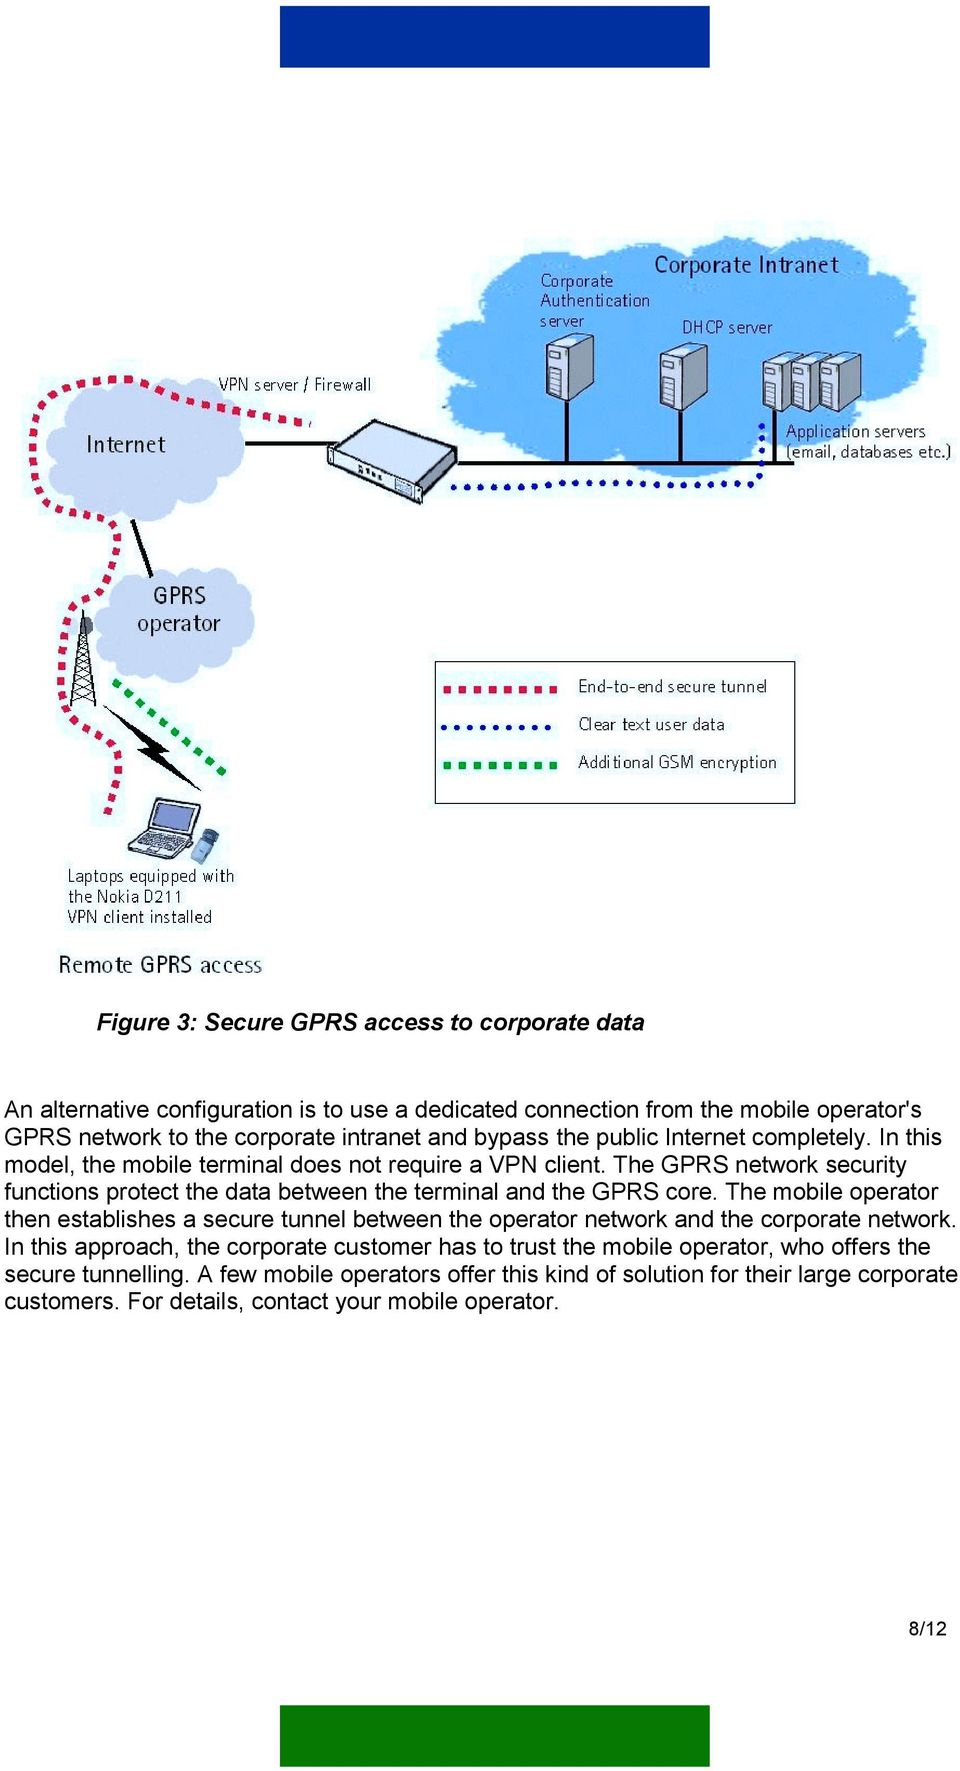 The GPRS network security functions protect the data between the terminal and the GPRS core.